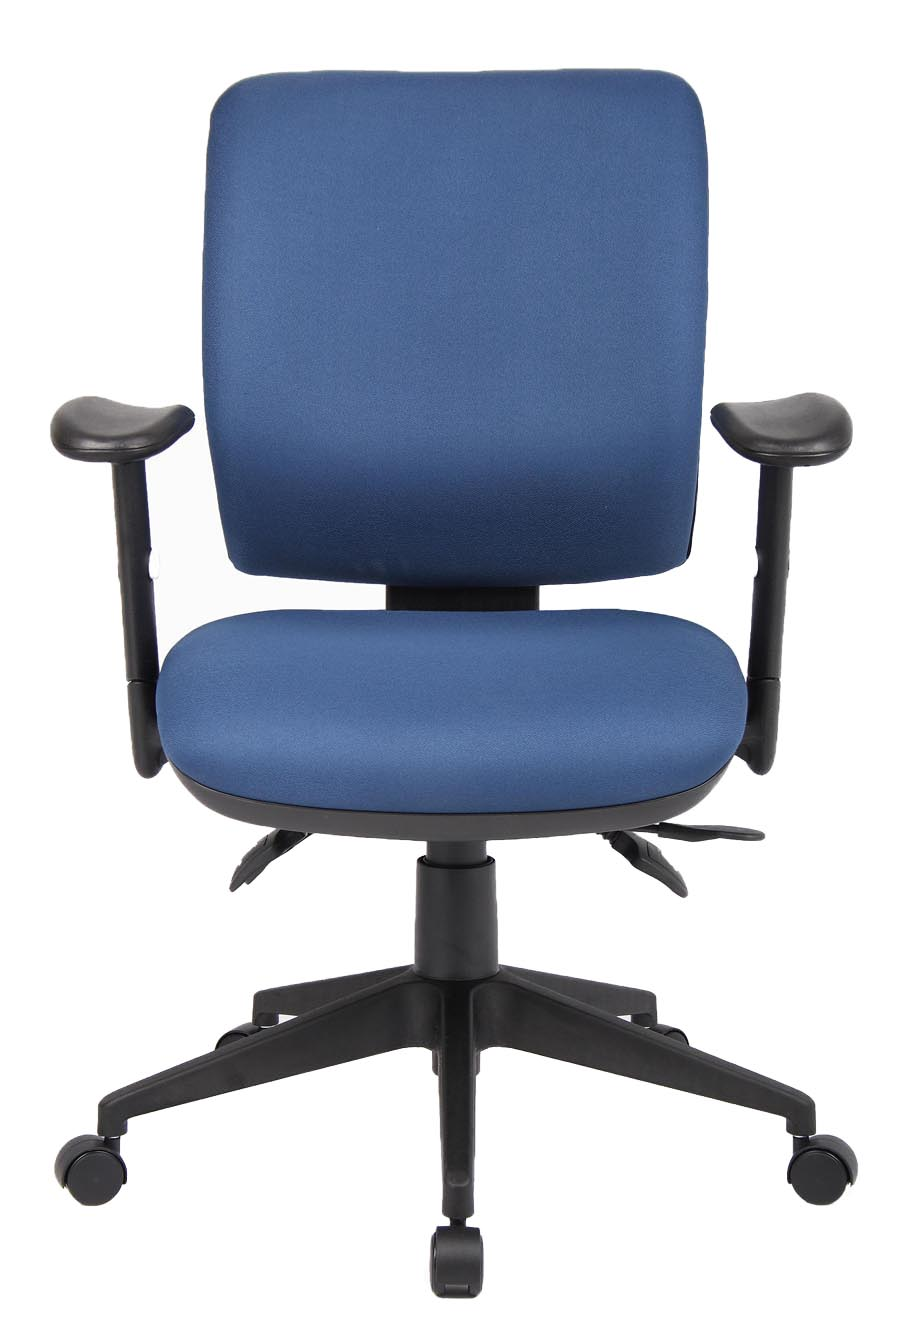 24 Hour Office Chairs Mode 100 Heavy Duty 24 Hour Office Chair